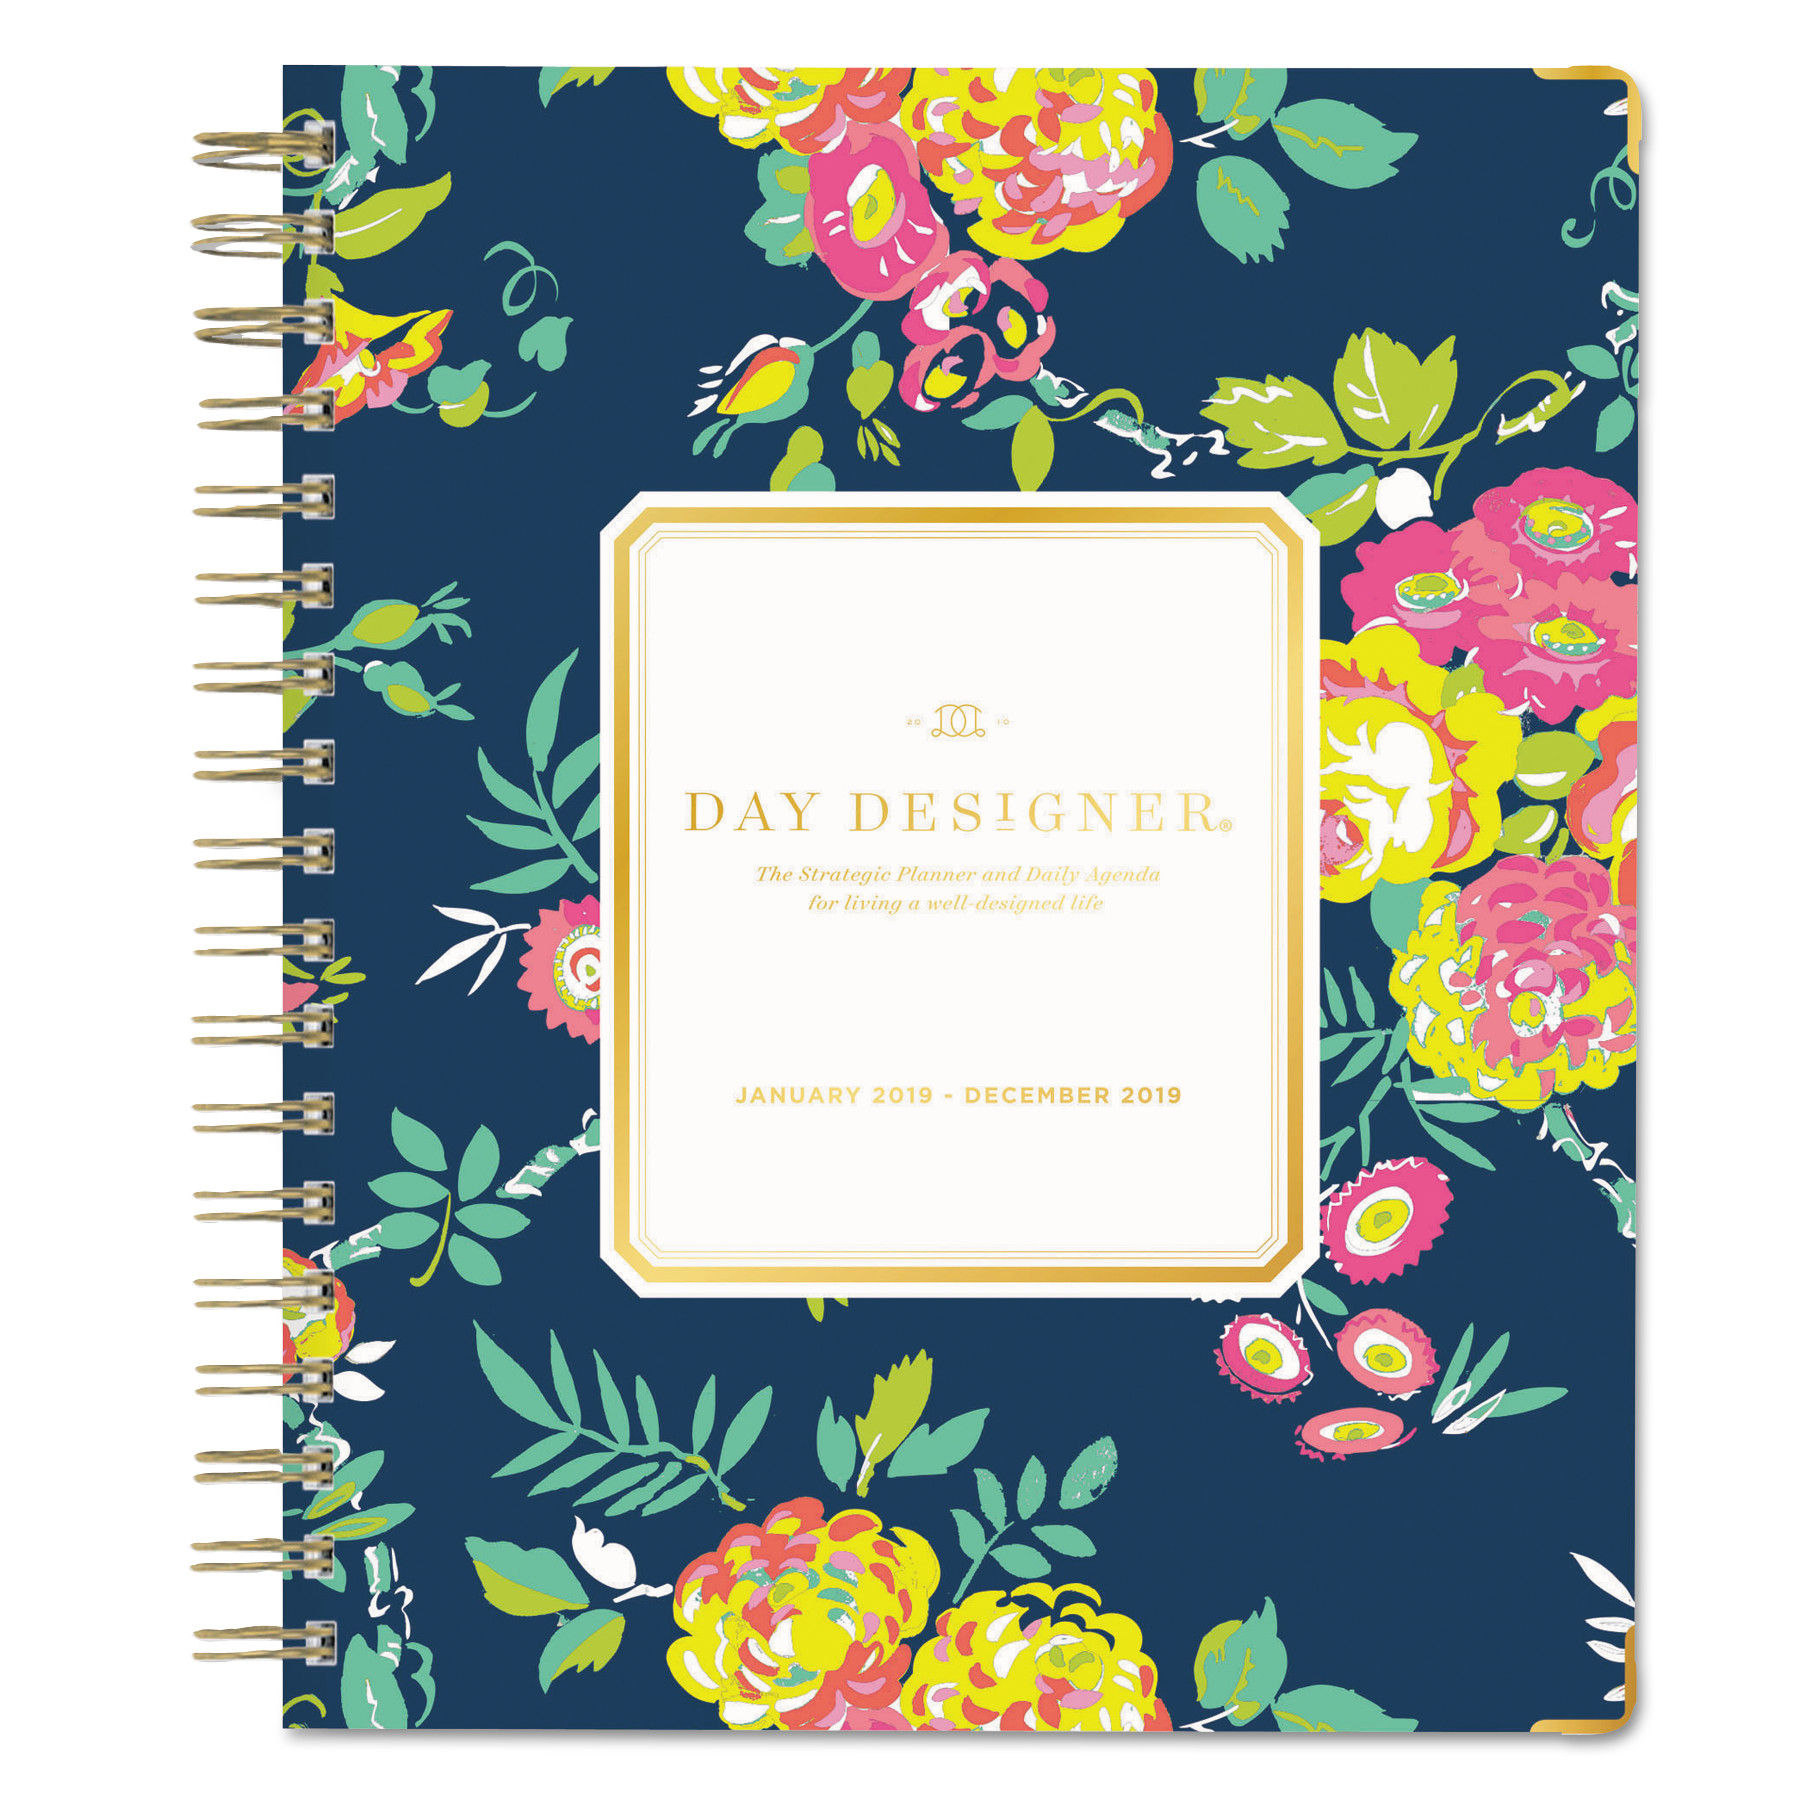 photo relating to Day Designer Planner named Working day Designer Gold Corner Weekly/Month to month Planner, 9 x 7, Army/Floral, 2019